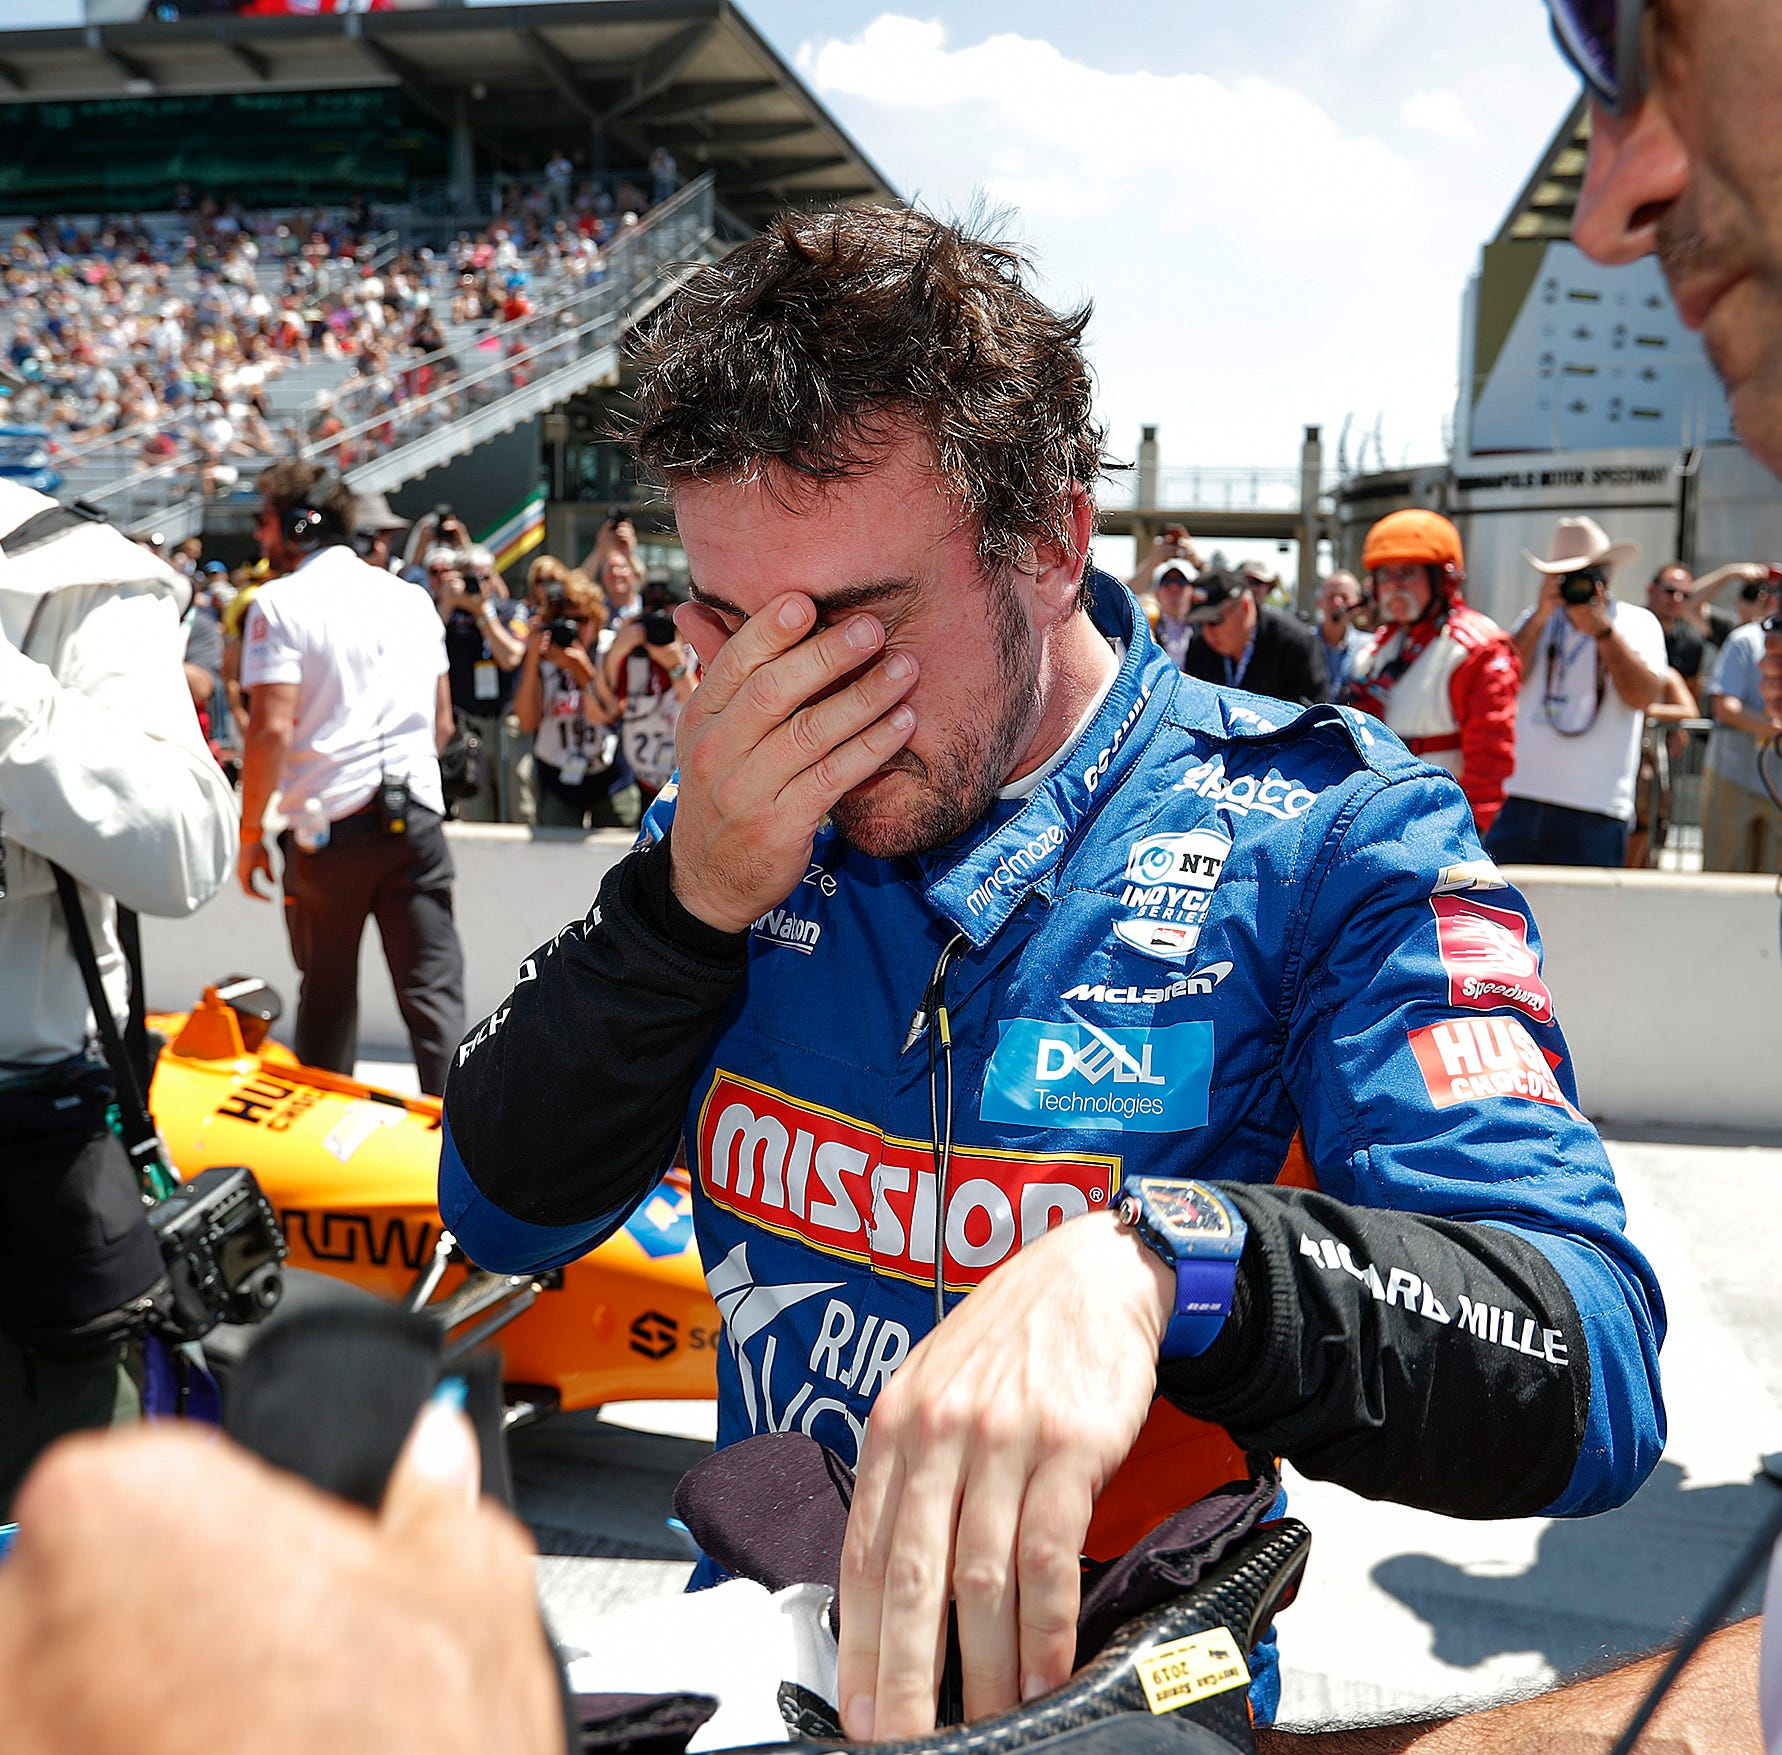 Insider: Failures of Alonso, Hinchcliffe make for captivating Day 1 of Indy 500 qualifying